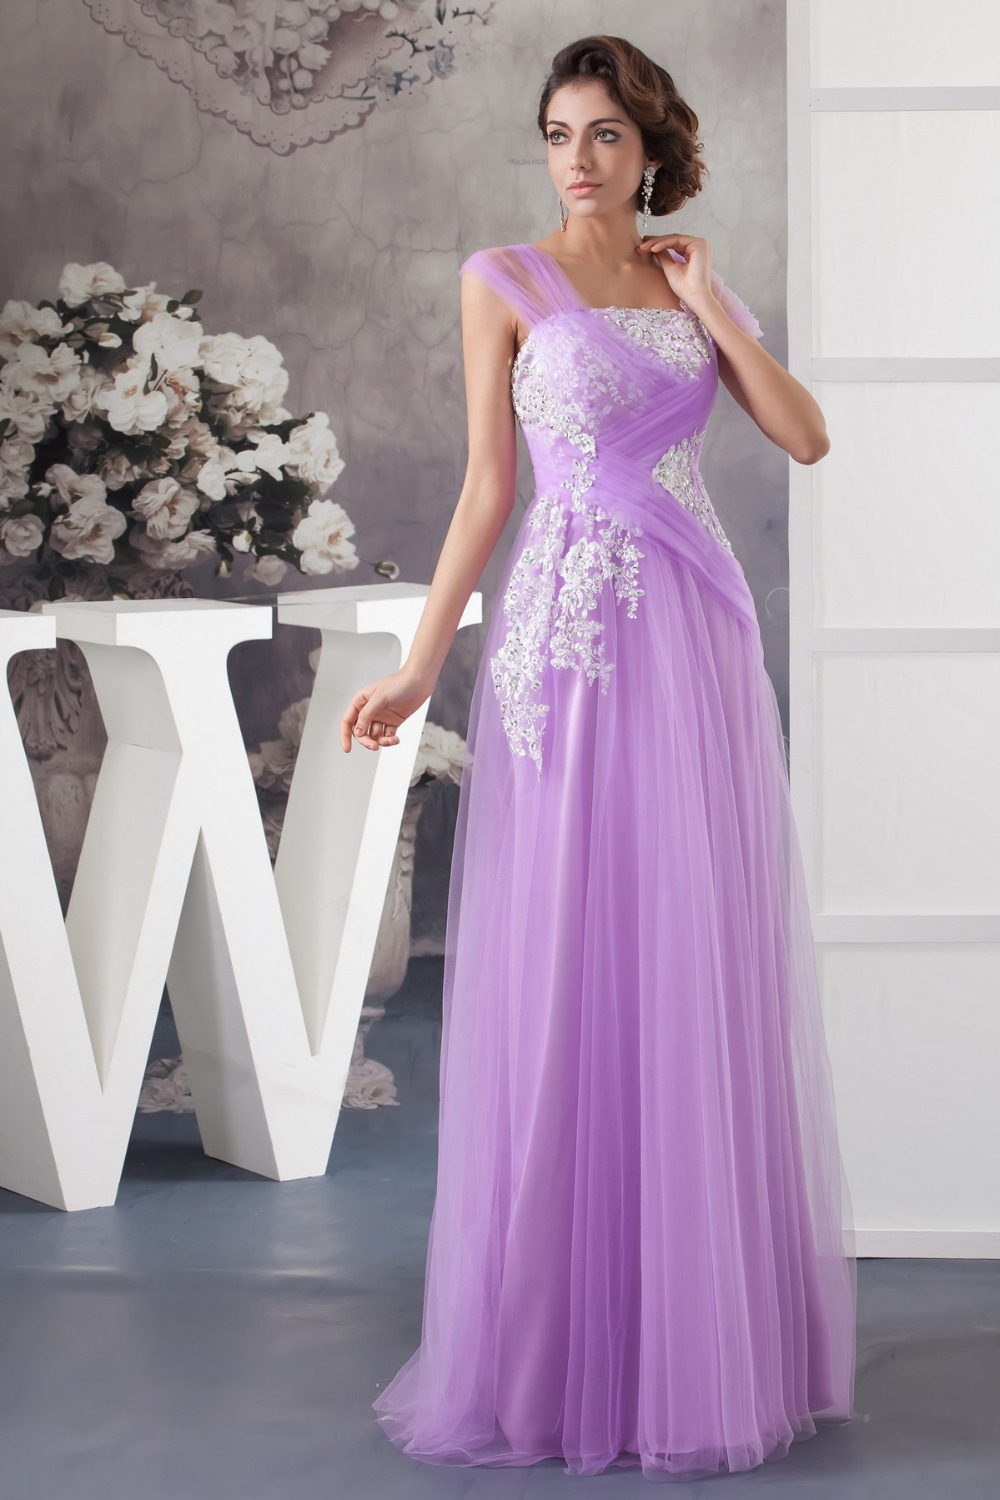 kass purple dresses for wedding purple wedding dress purple ball gown wedding dresses plus size long sleeve wedding gowns